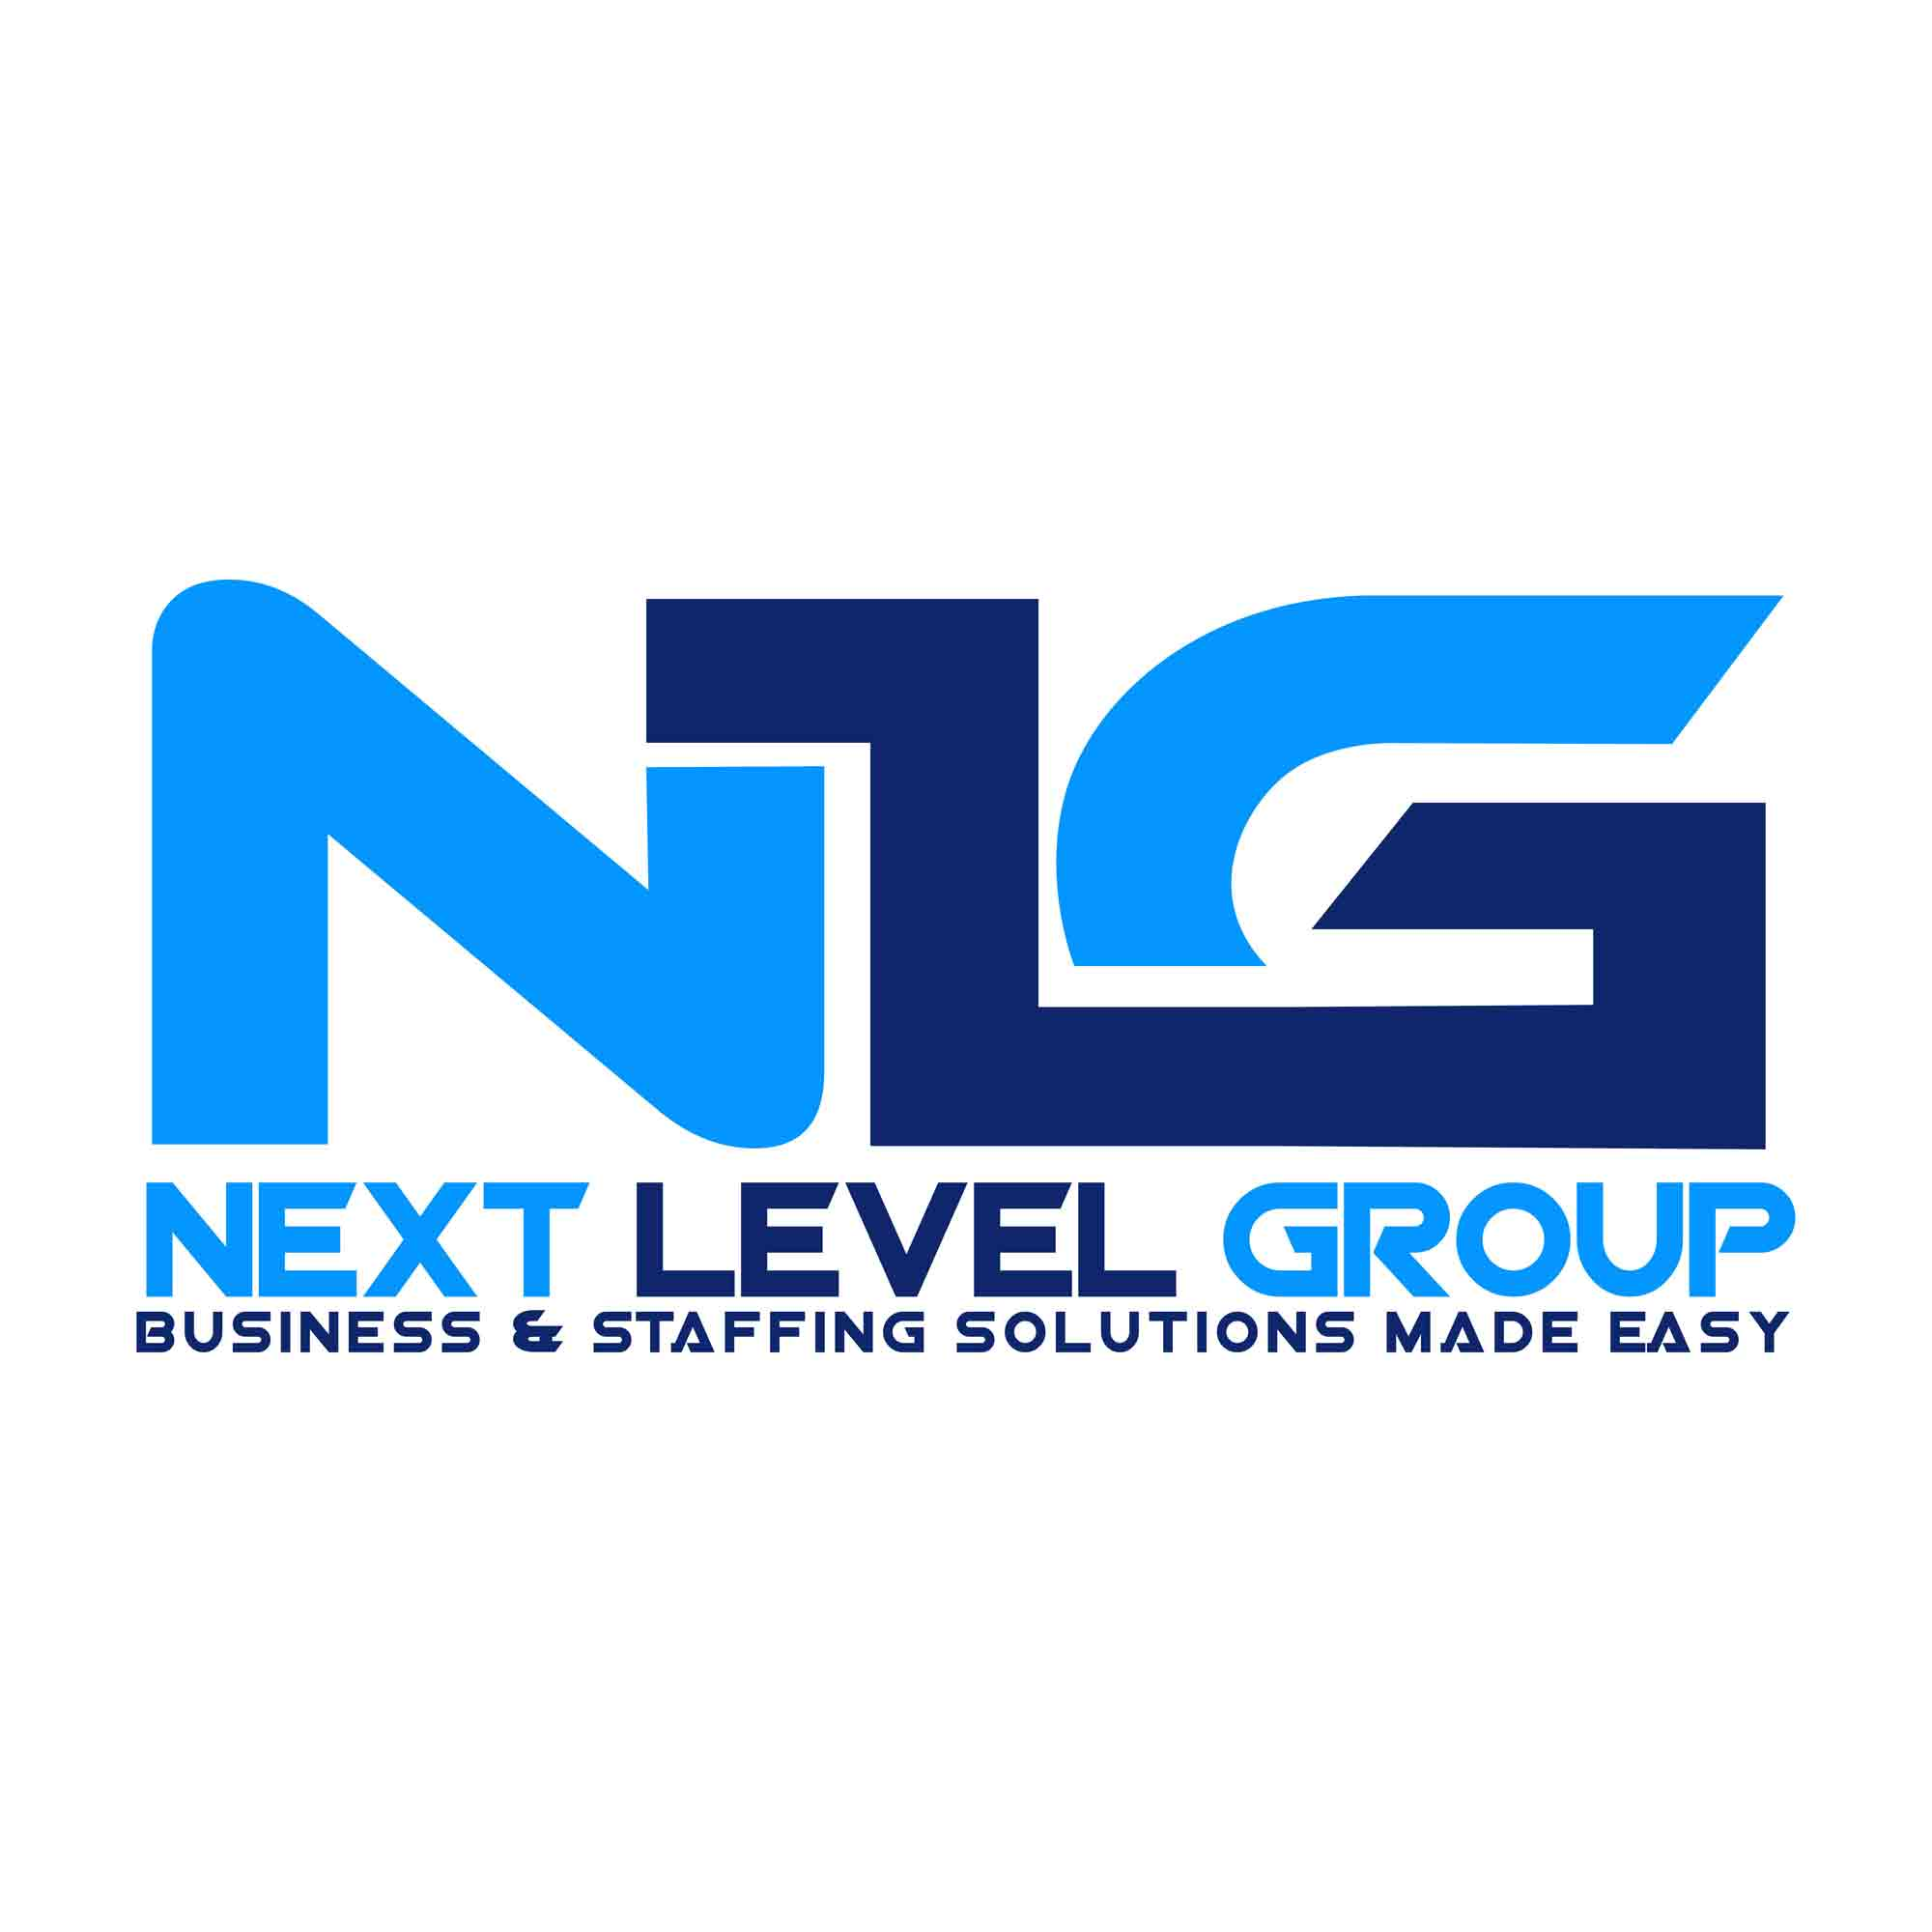 Next Level Group